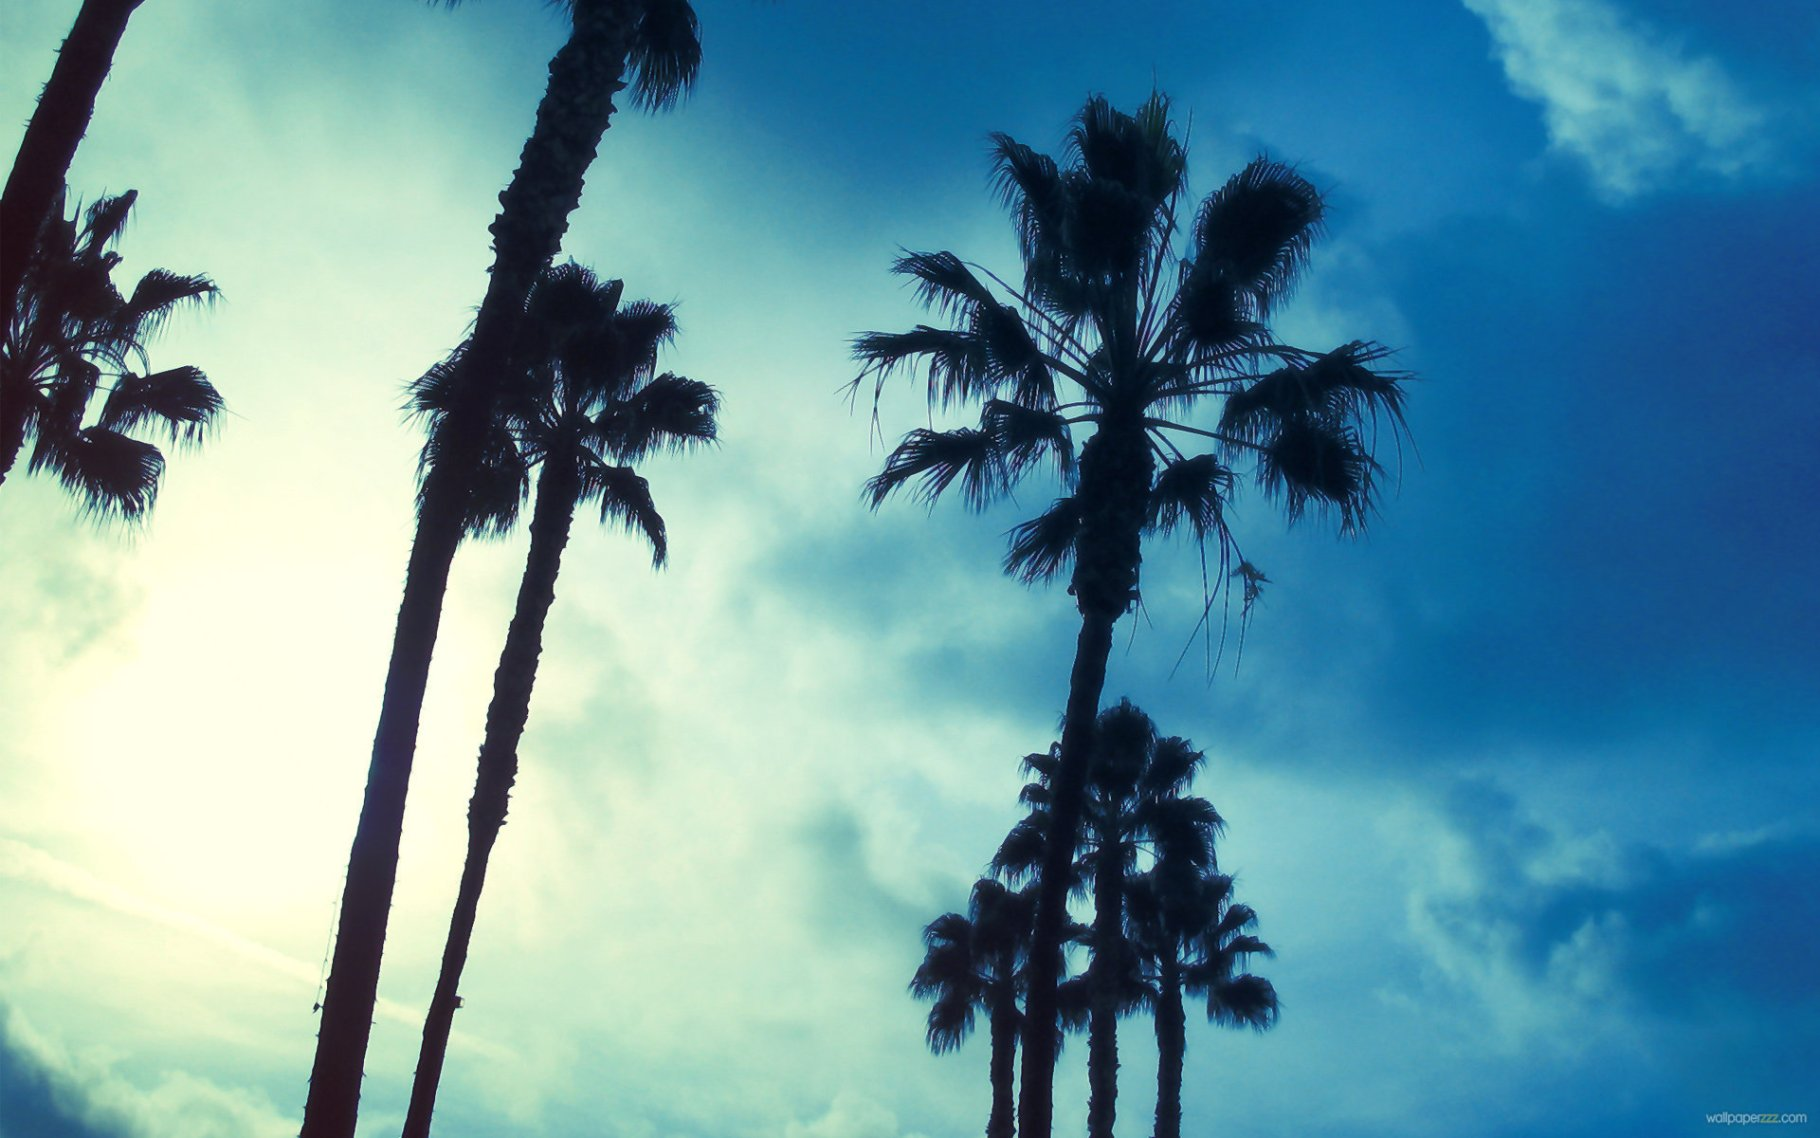 Palmtrees Please!: The Edit